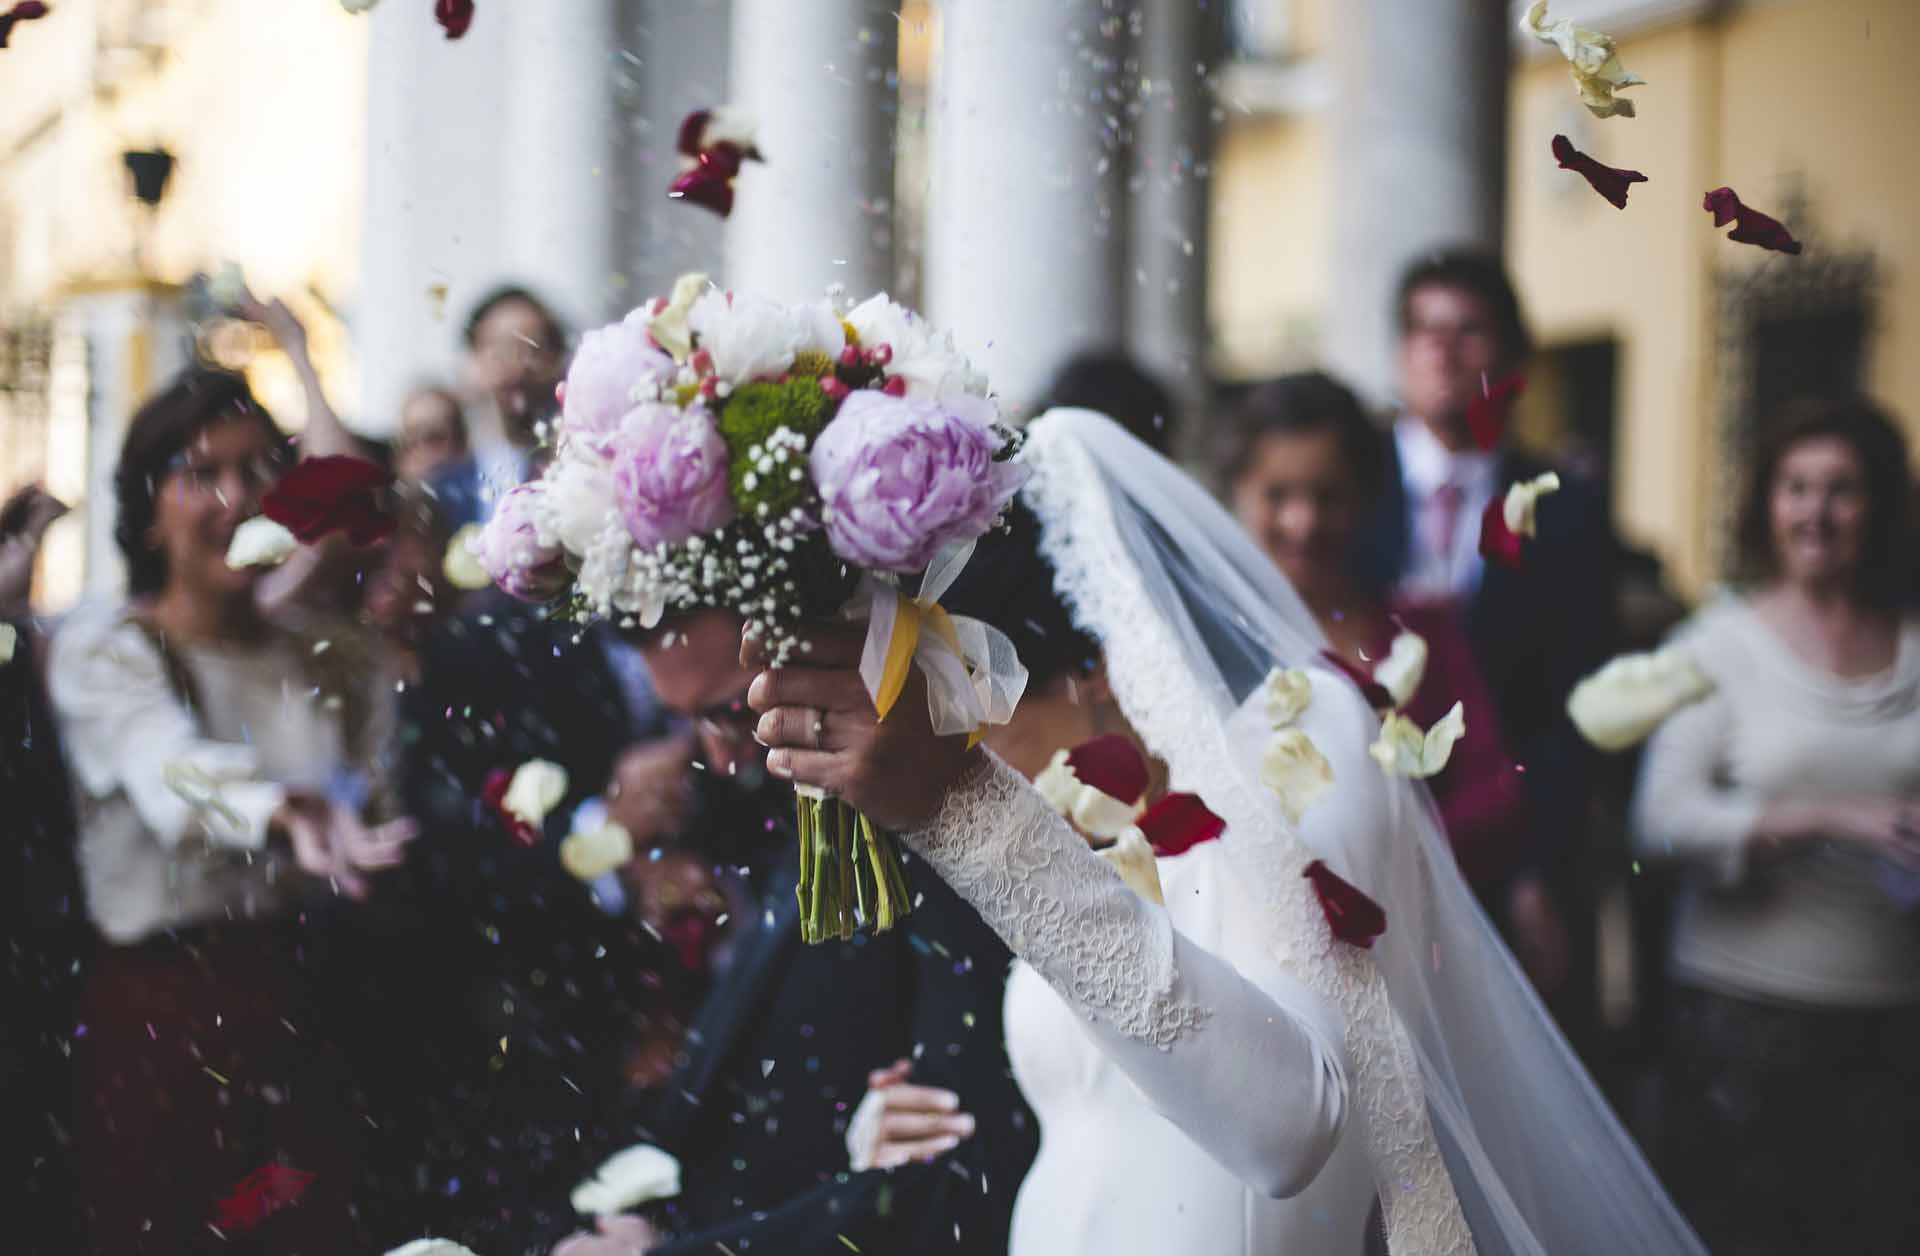 How to decorate your wedding: Trends 2019!